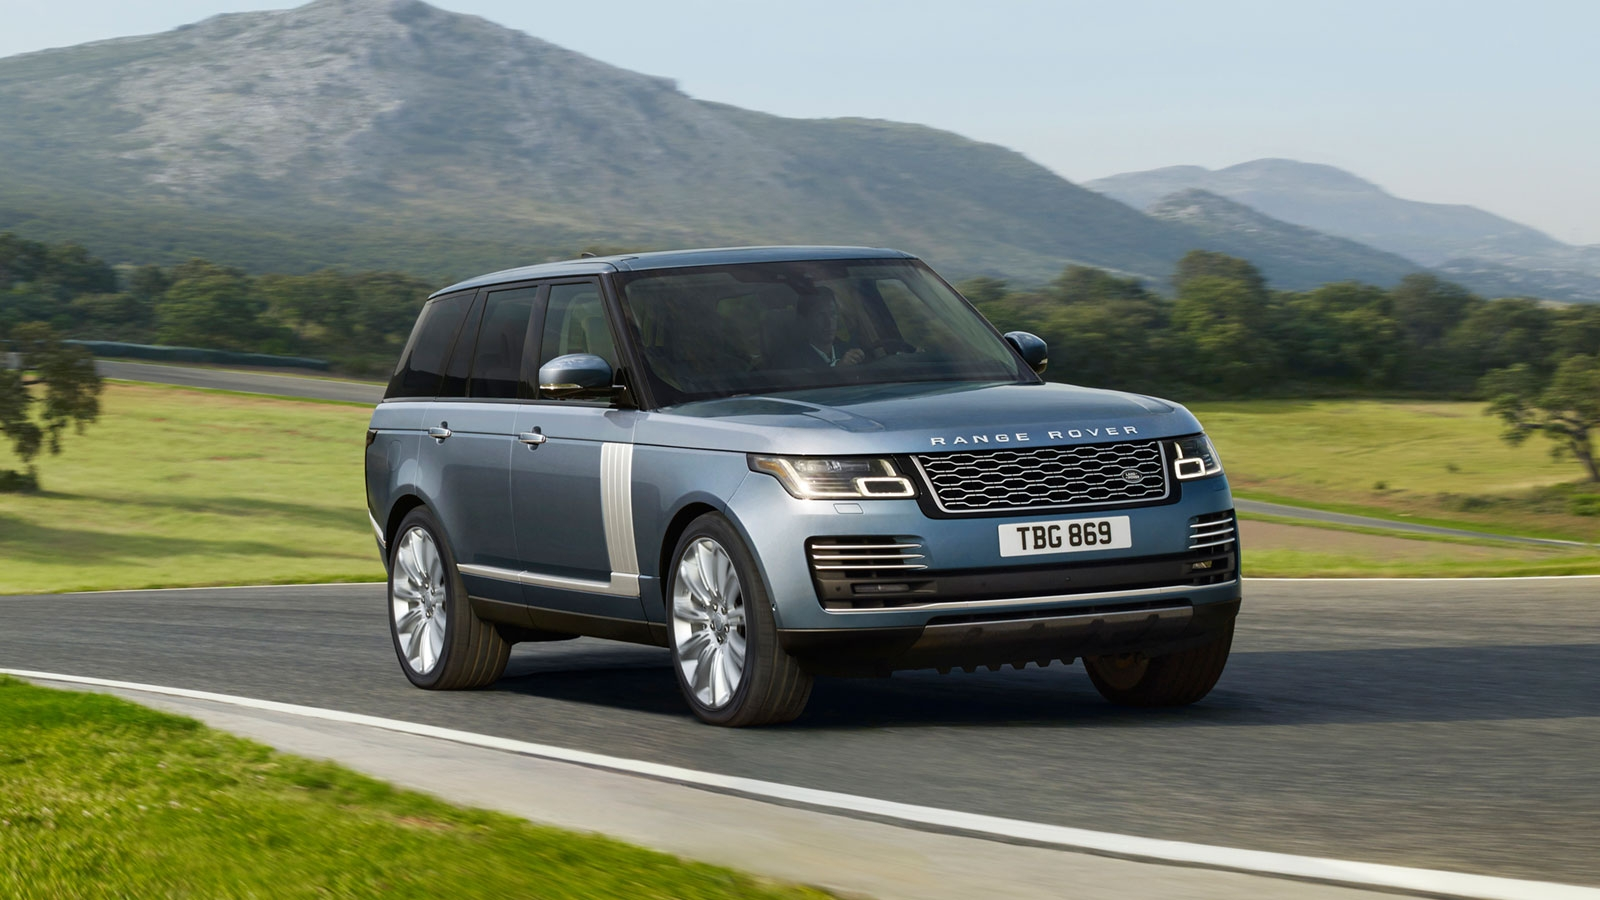 New 2019 Land Rover Range Rover model in Pasadena